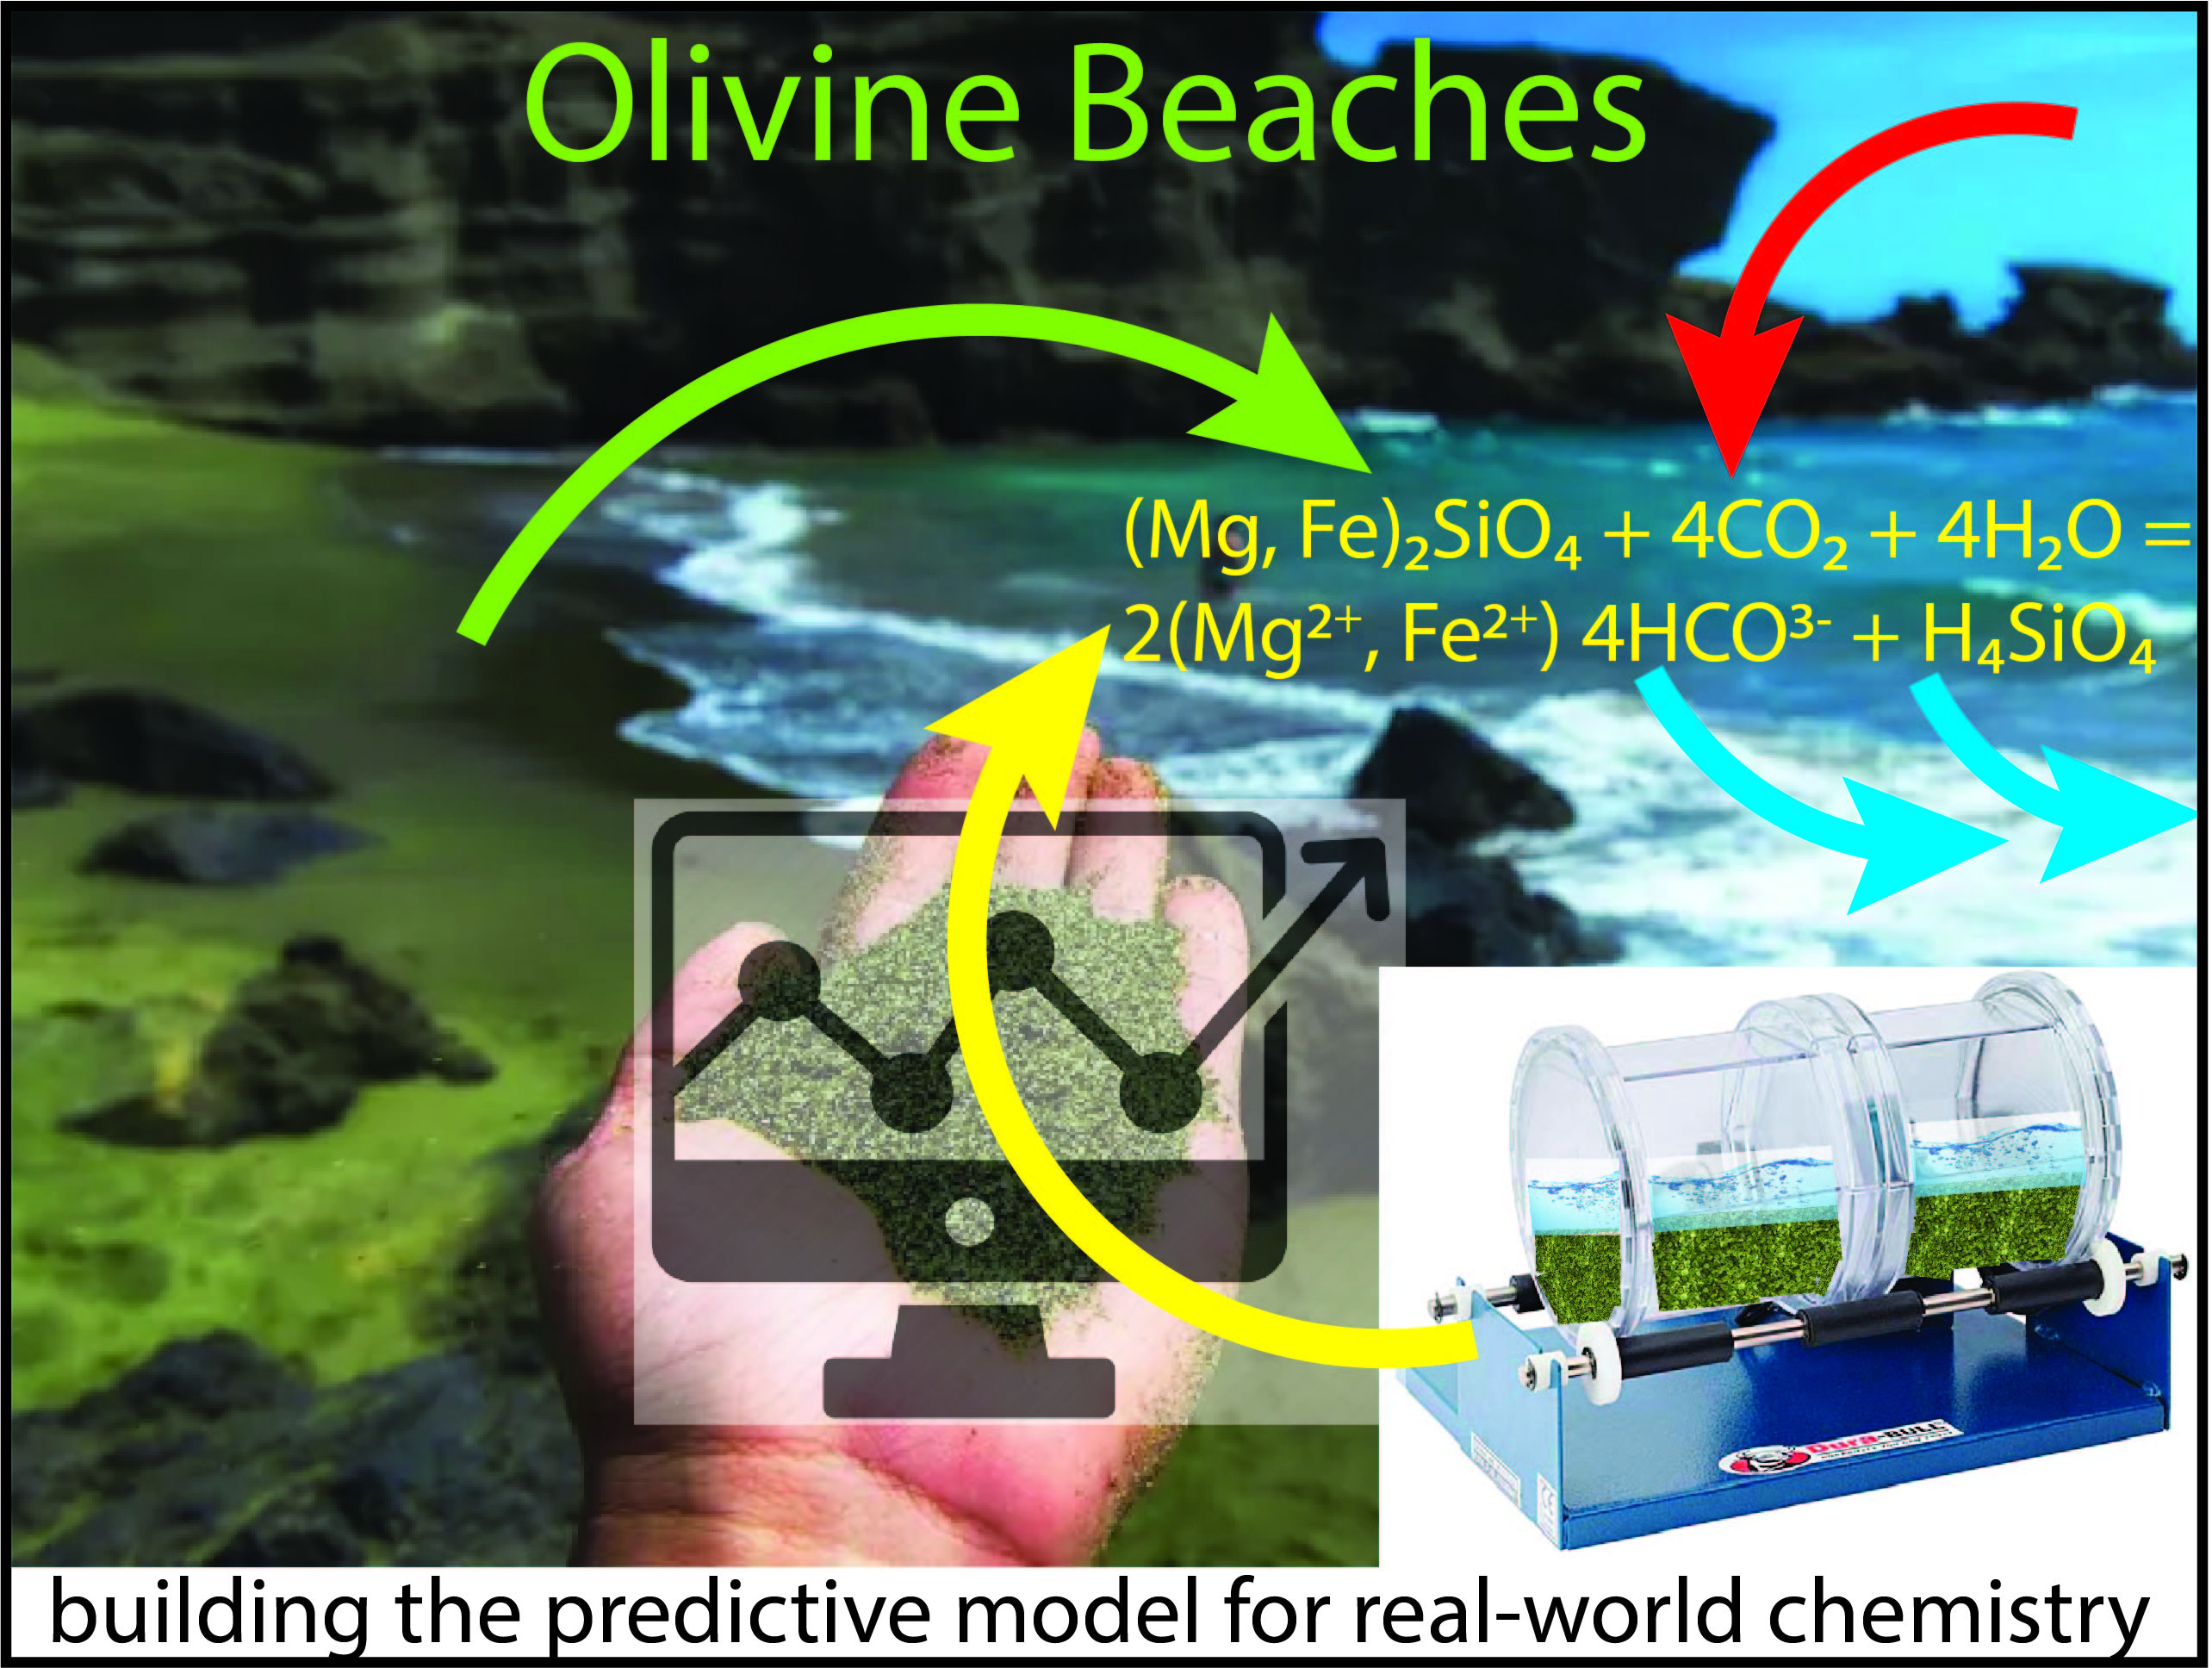 Via Christopher Sabine on the Ocean Acidification Information Exchange